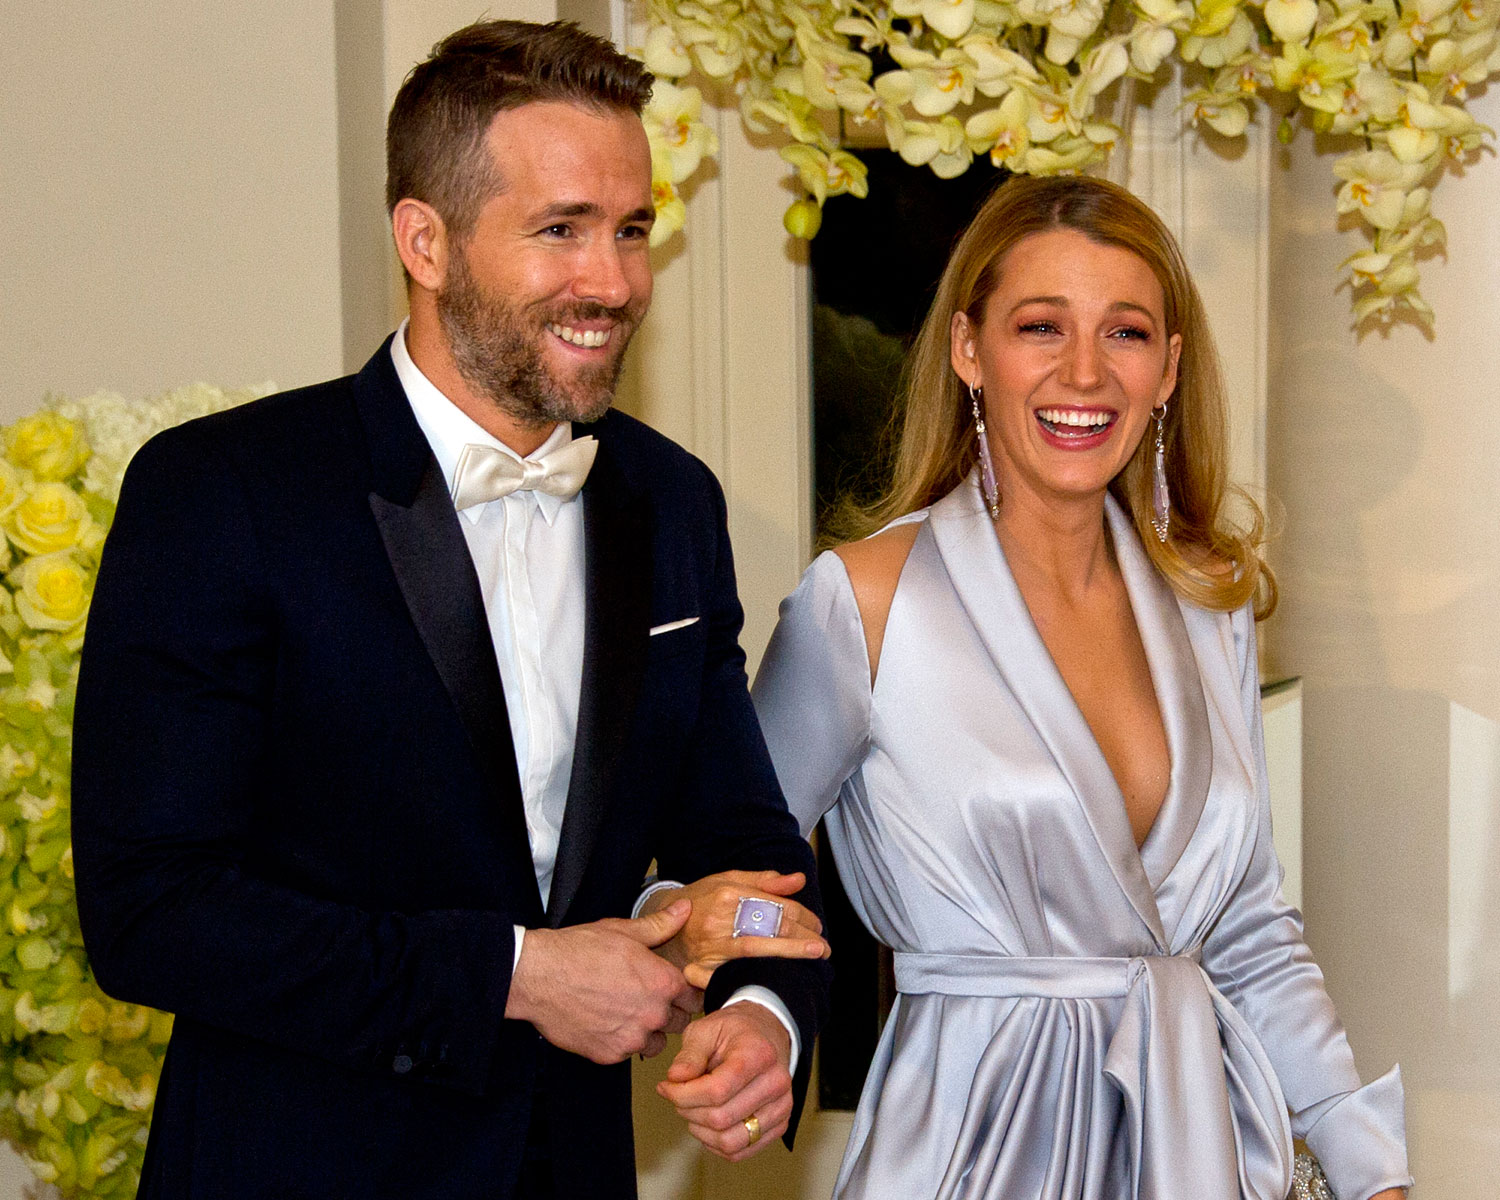 Ryan Reynolds' Birthday Message for Blake Lively Was Hilarious